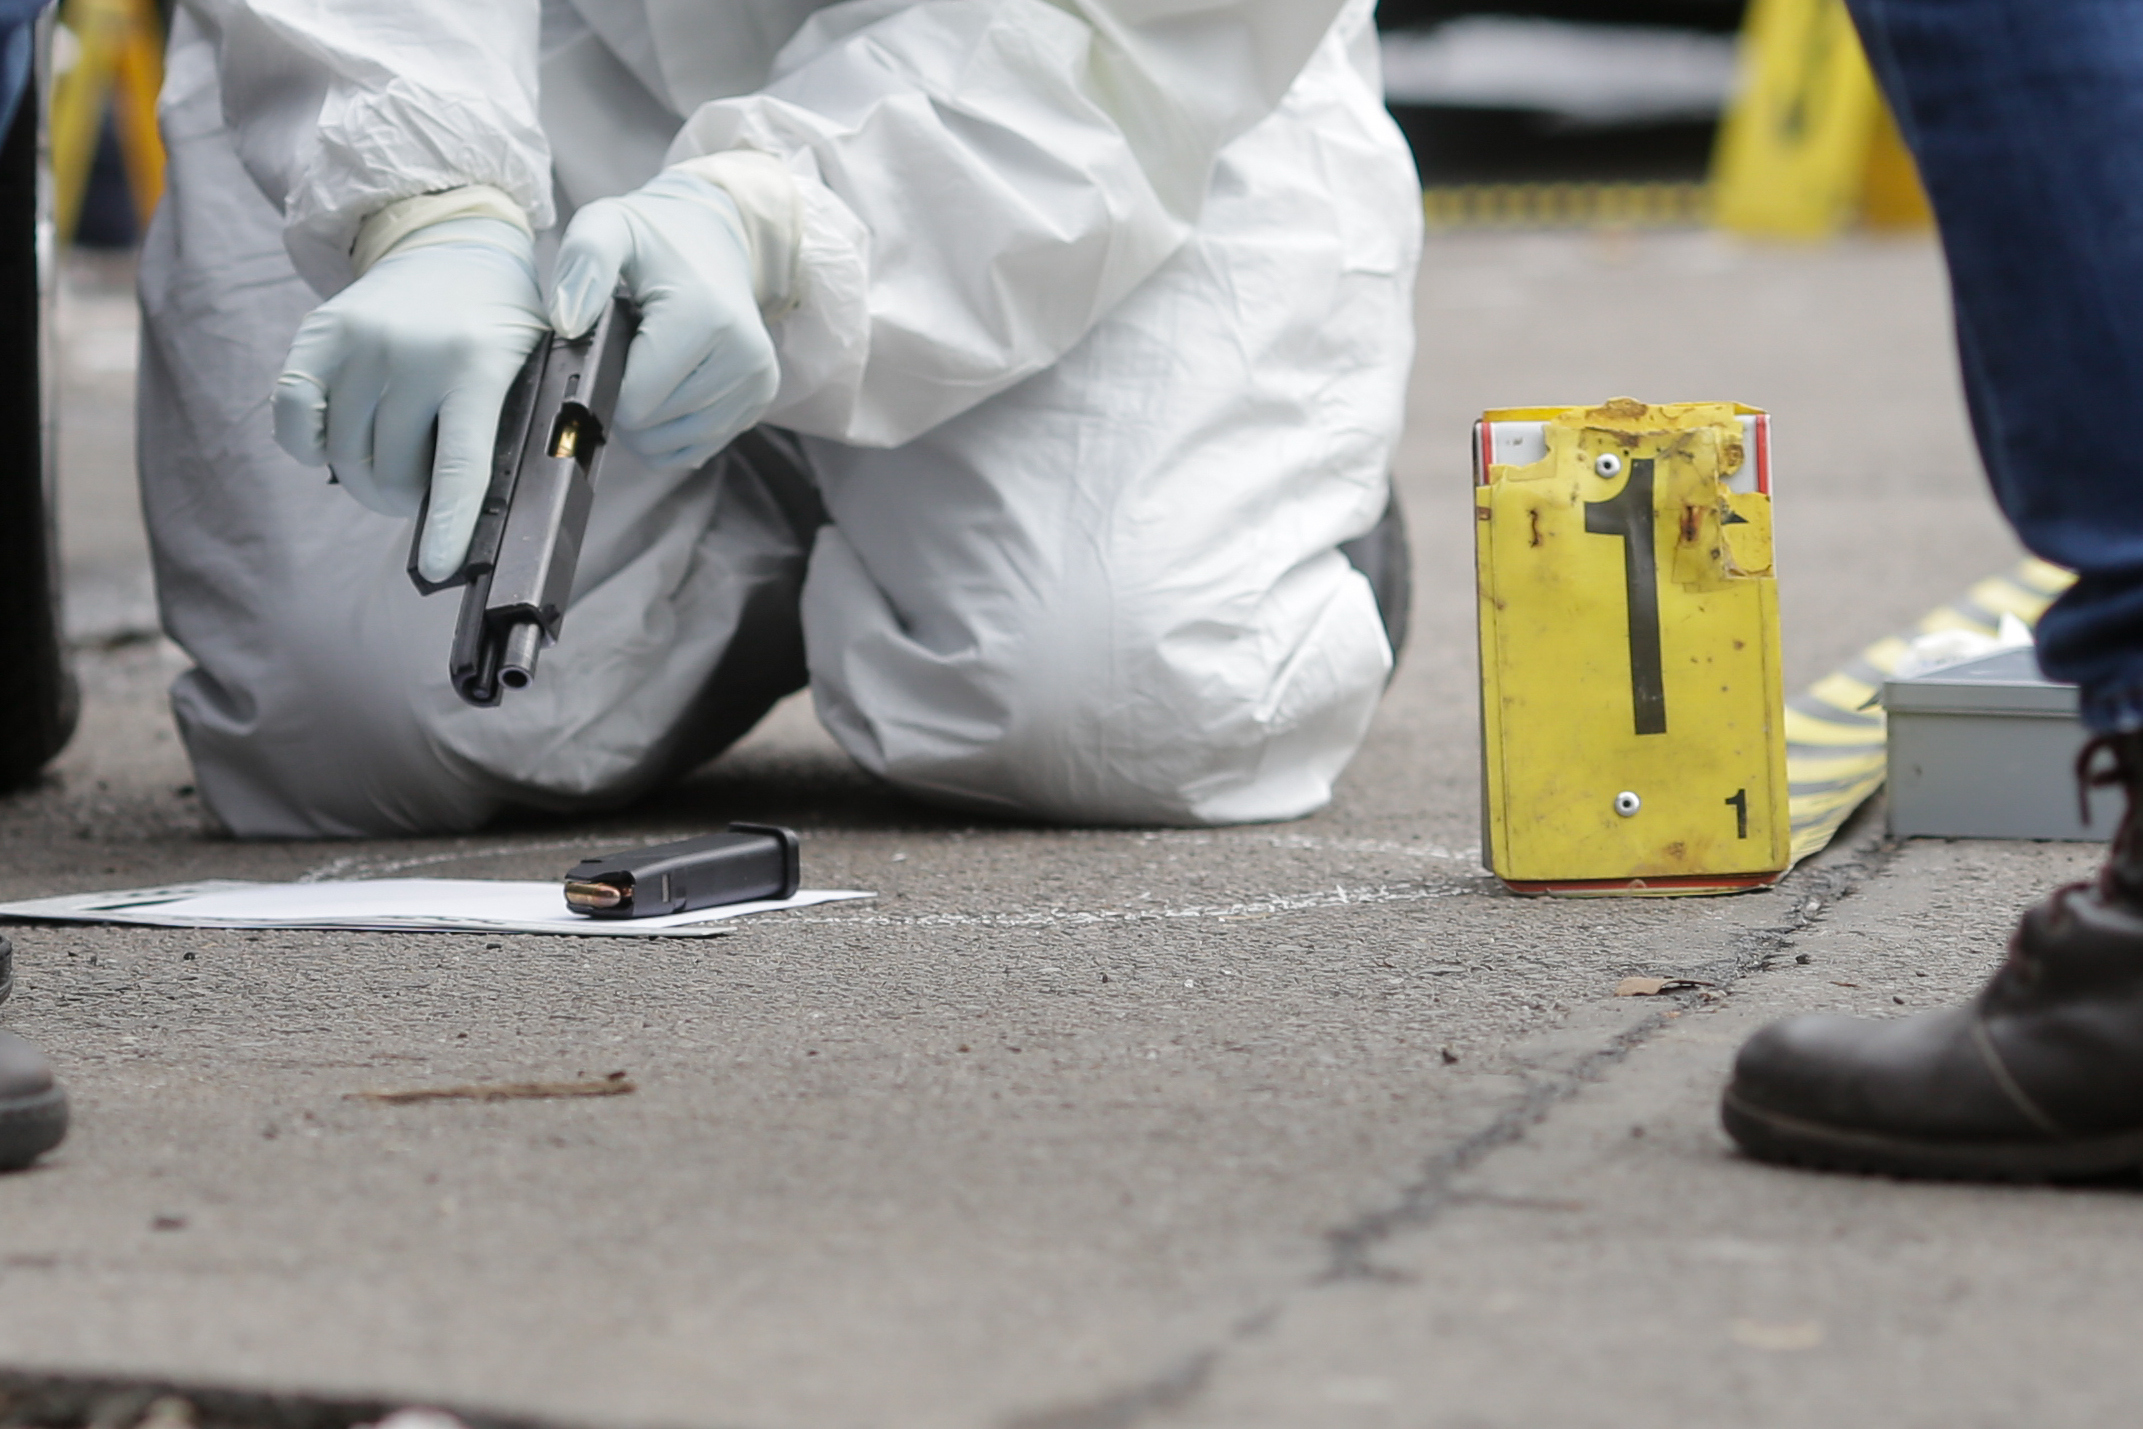 Image of a firearm being recovered form a crime scene